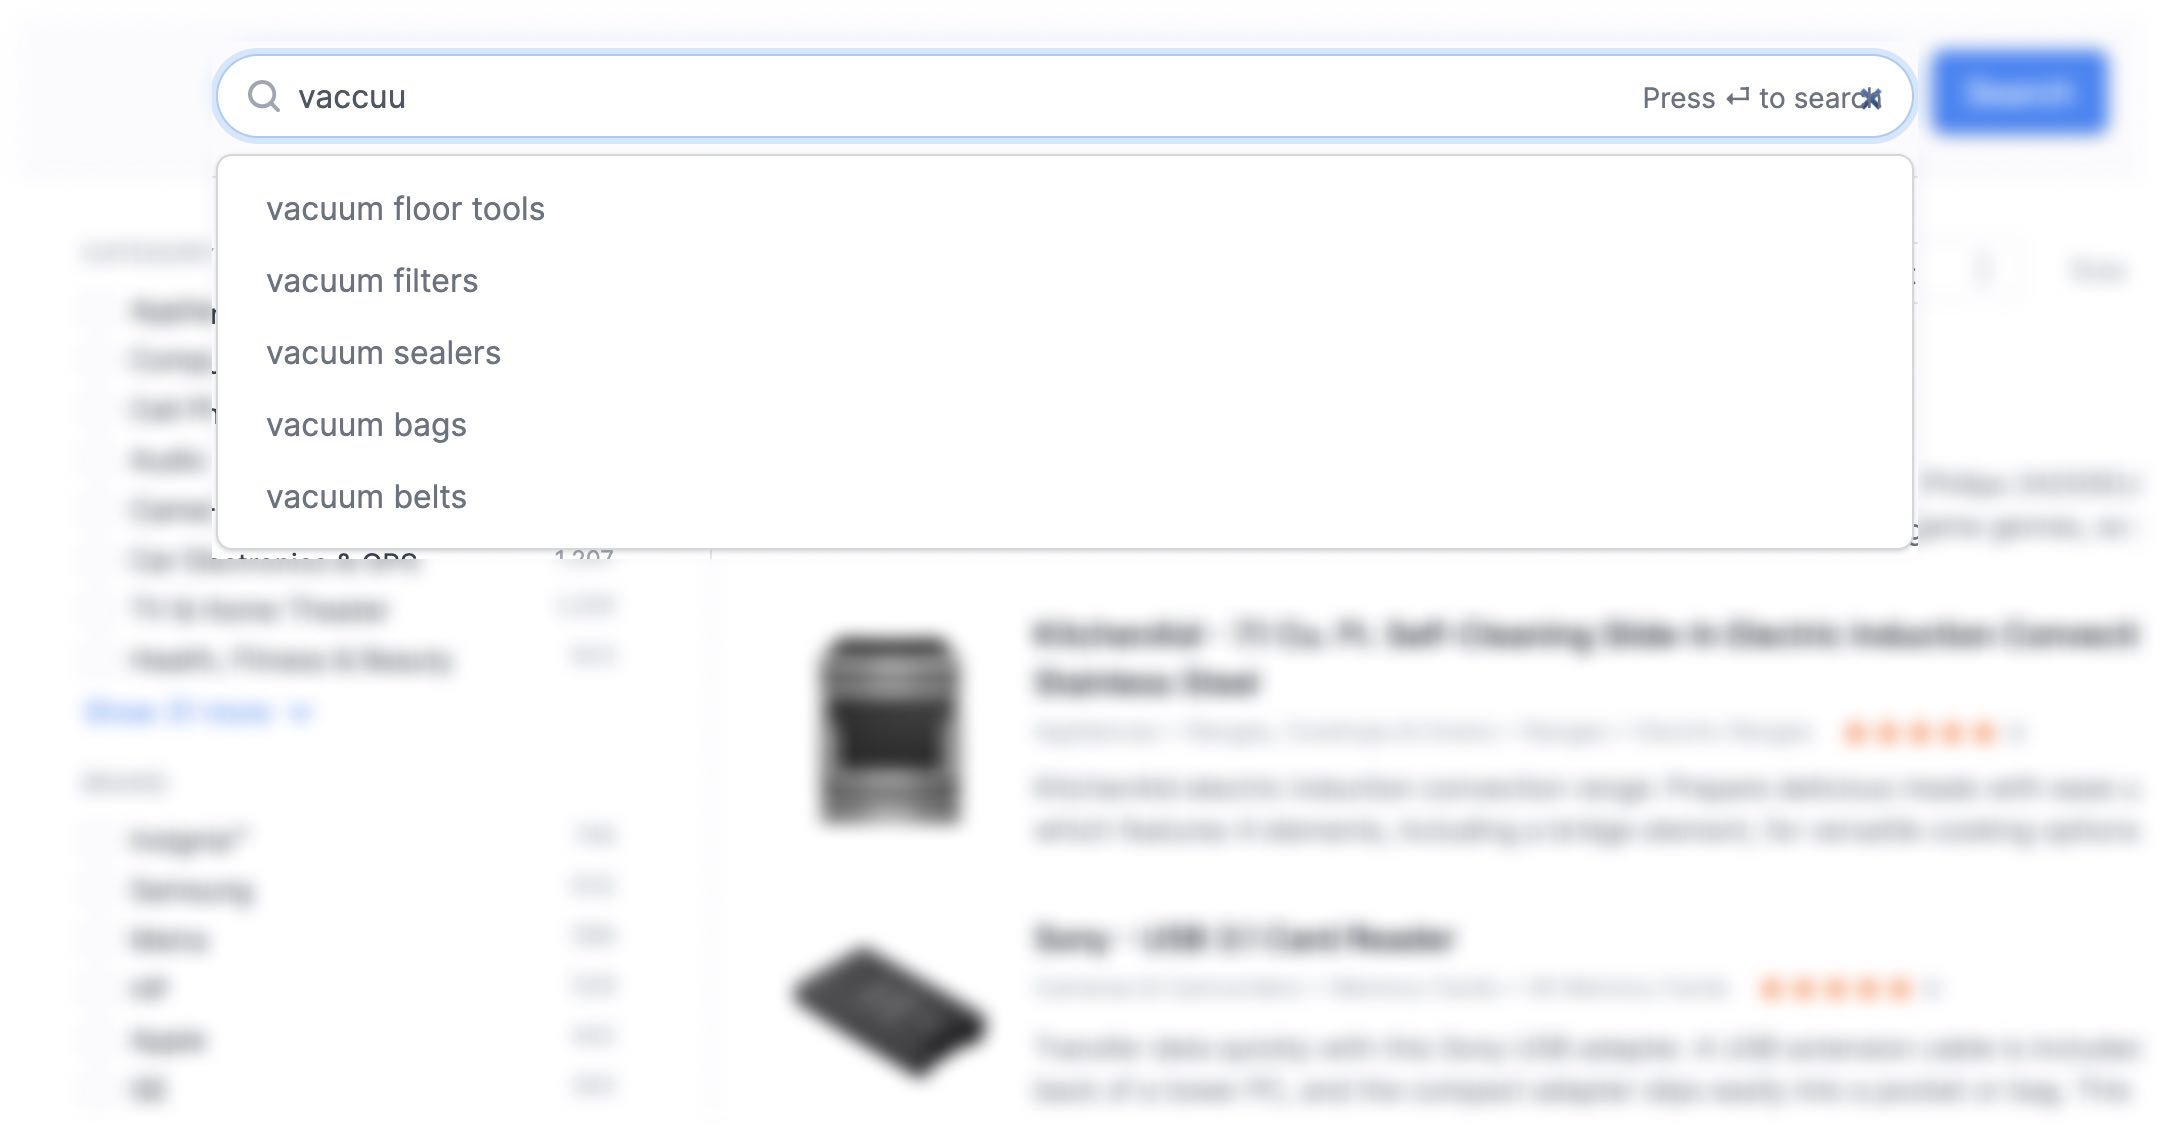 Example of search autocomplete and autosuggest